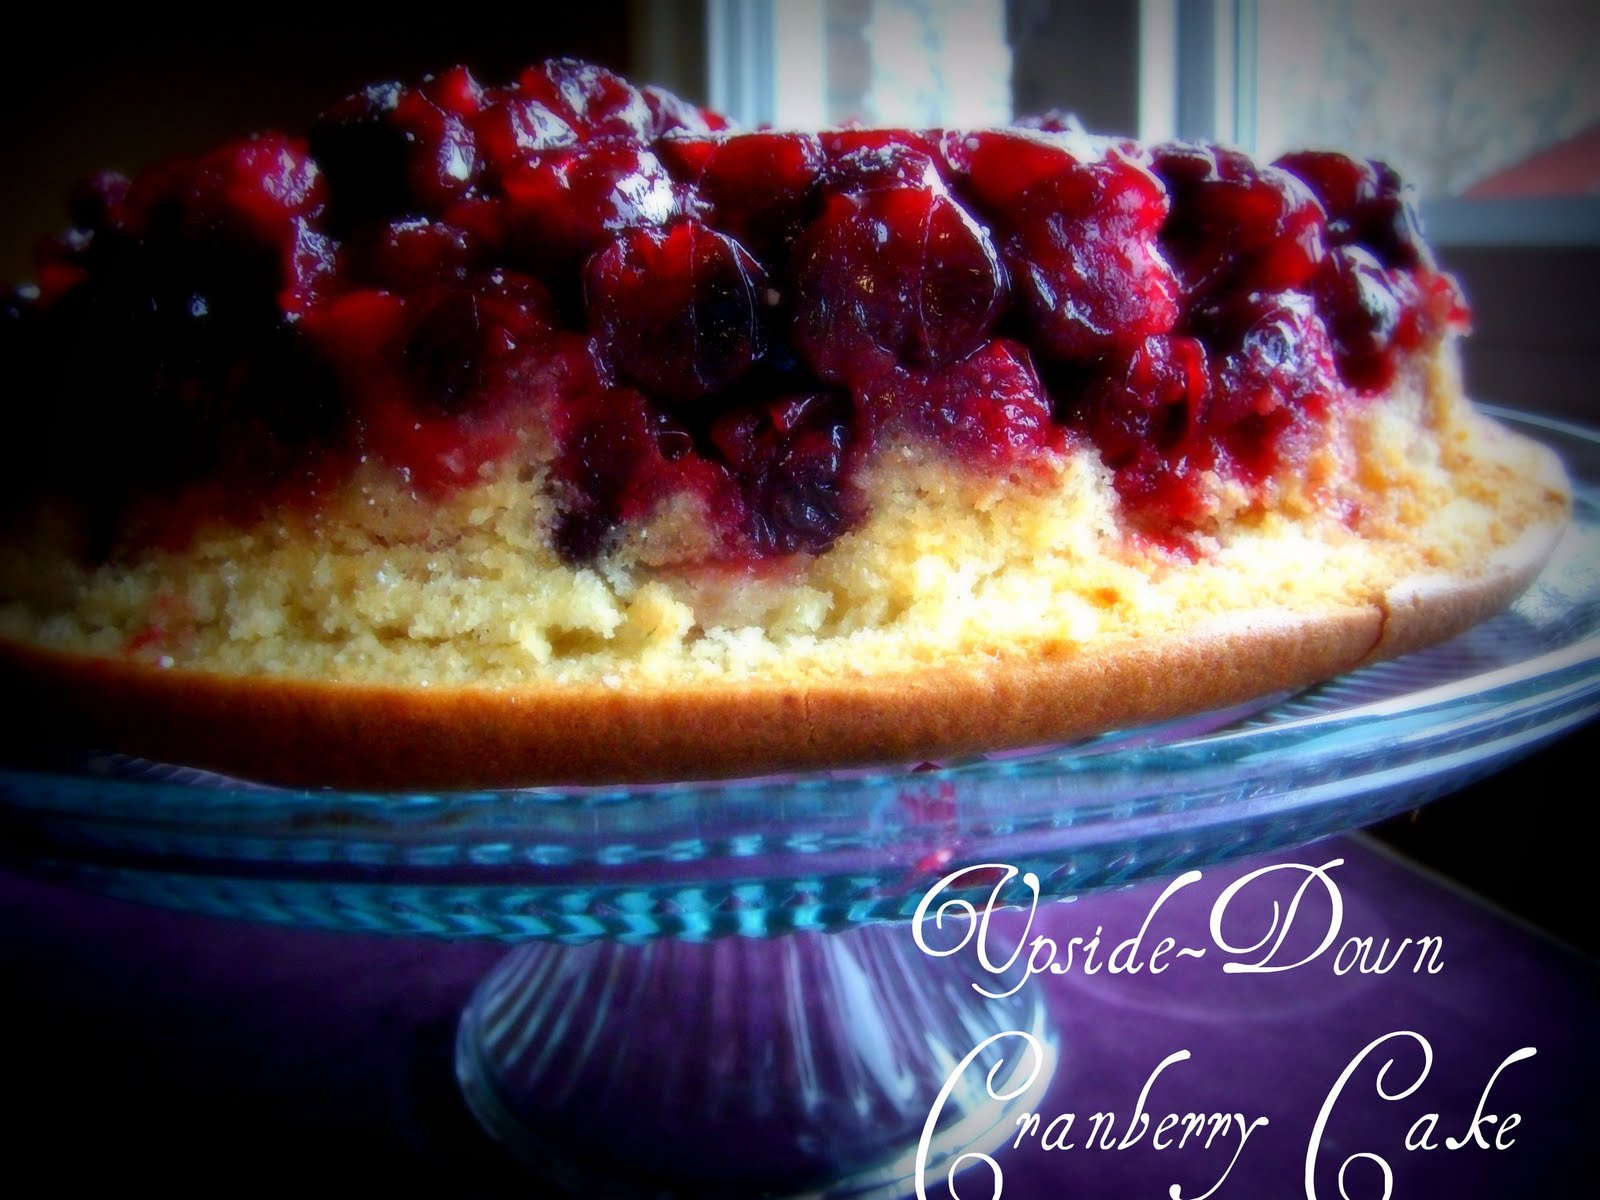 The Life of a Novice!: Upside-Down Cranberry Cake